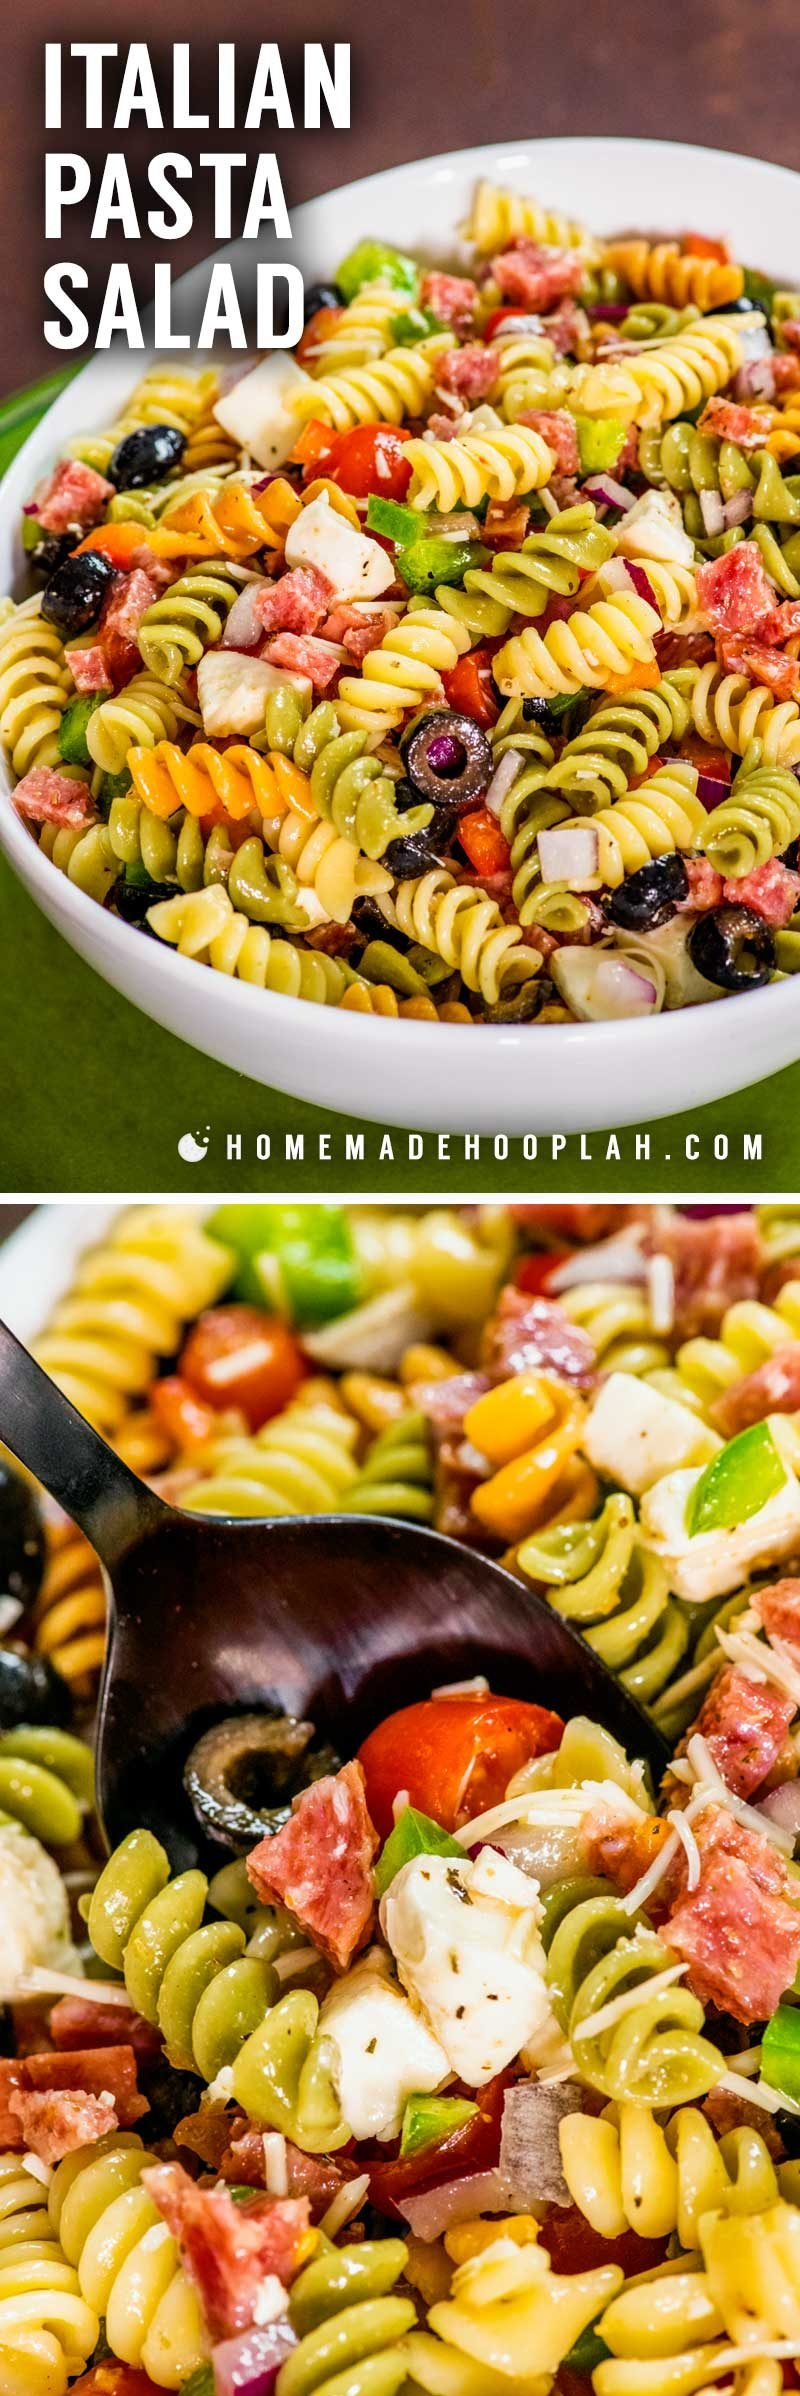 How to make Italian pasta salad with tri color rotini pasta.